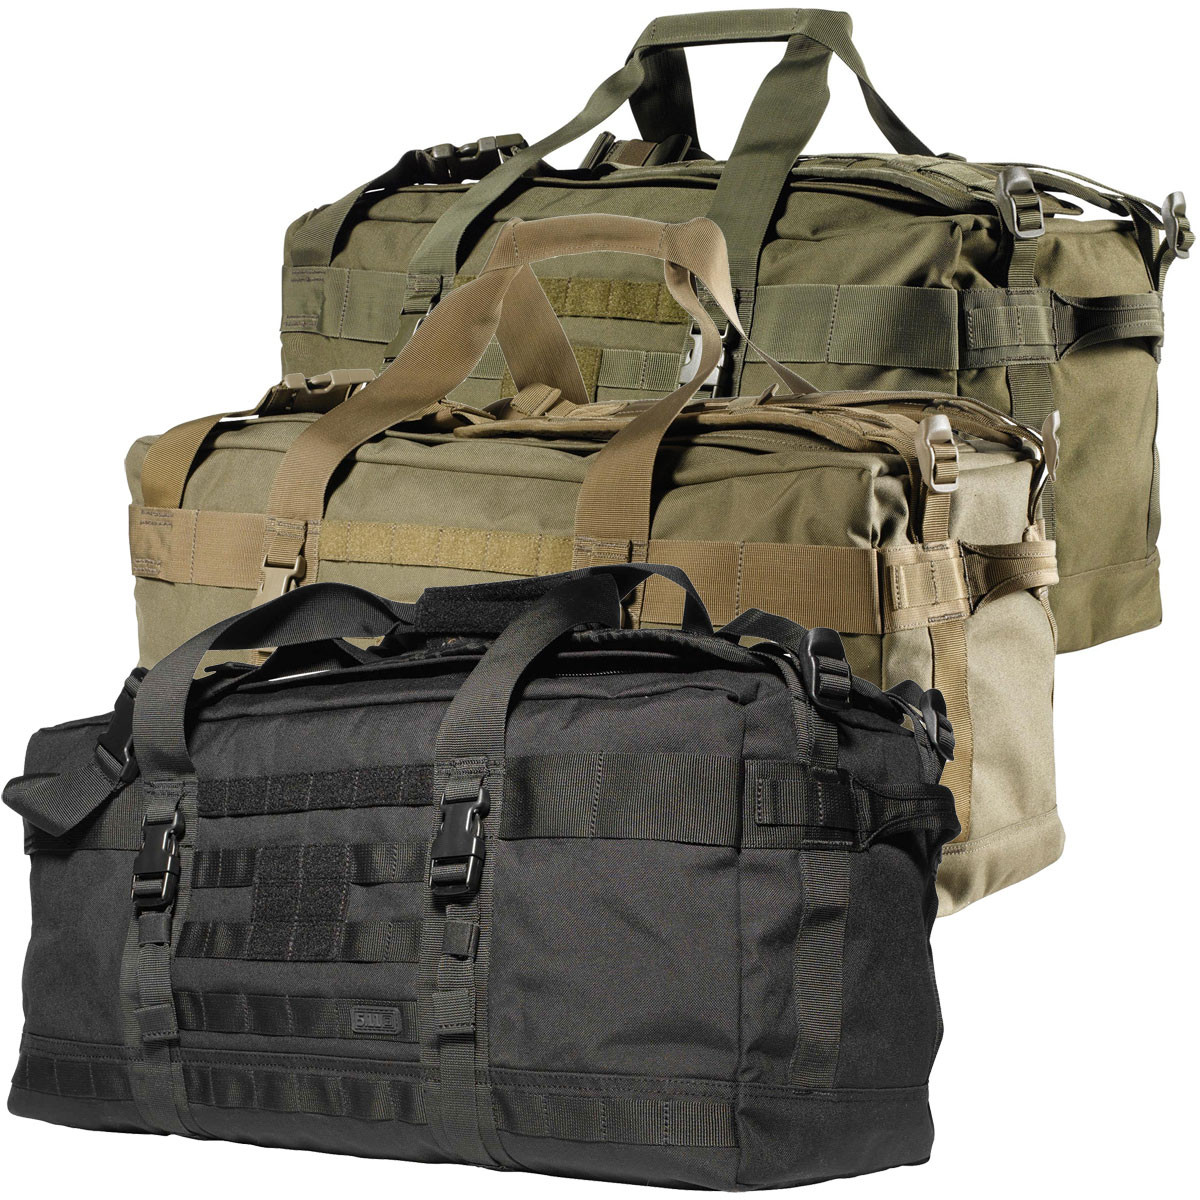 335bd02b01eb The RUSH LBD LIMA is built tough  this is the pack built for the ...